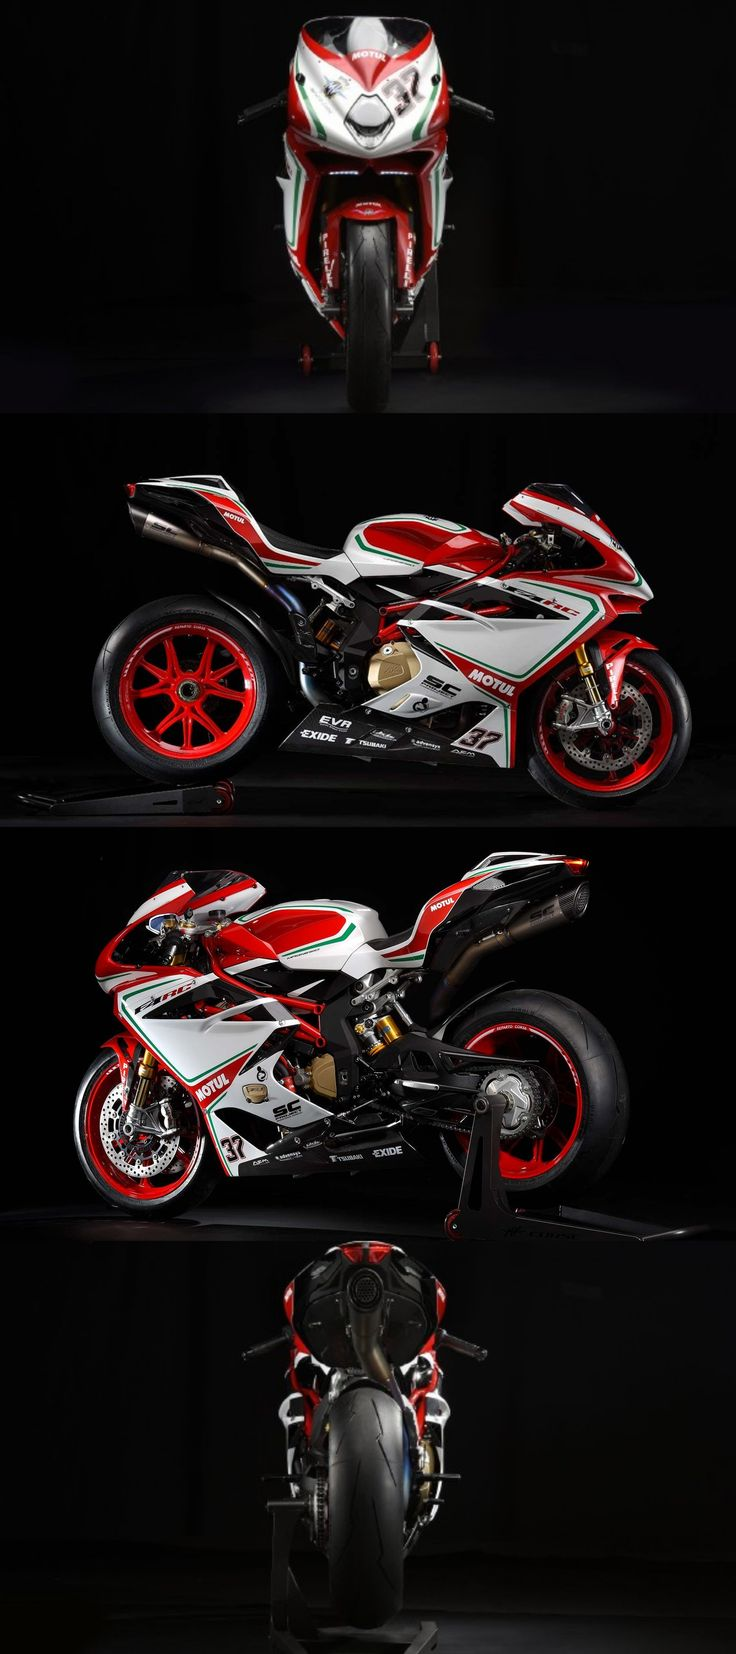 MV Agusta F4 Model Power, Mileage, Safety, Colors Mv